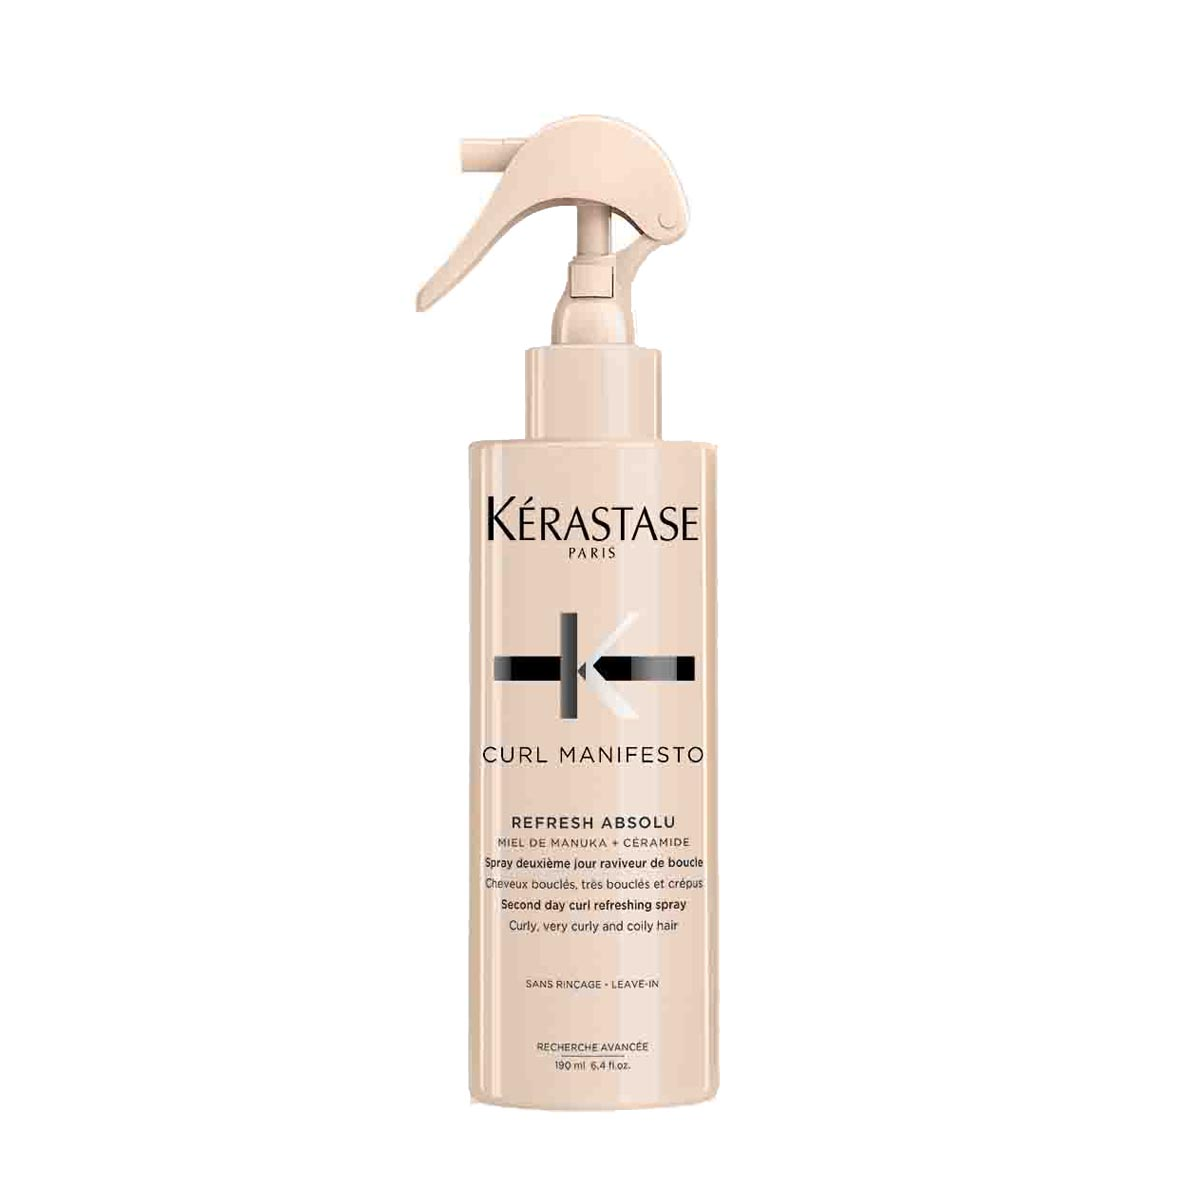 Refresh Absolu Curl Manifesto Kérastase 190ml